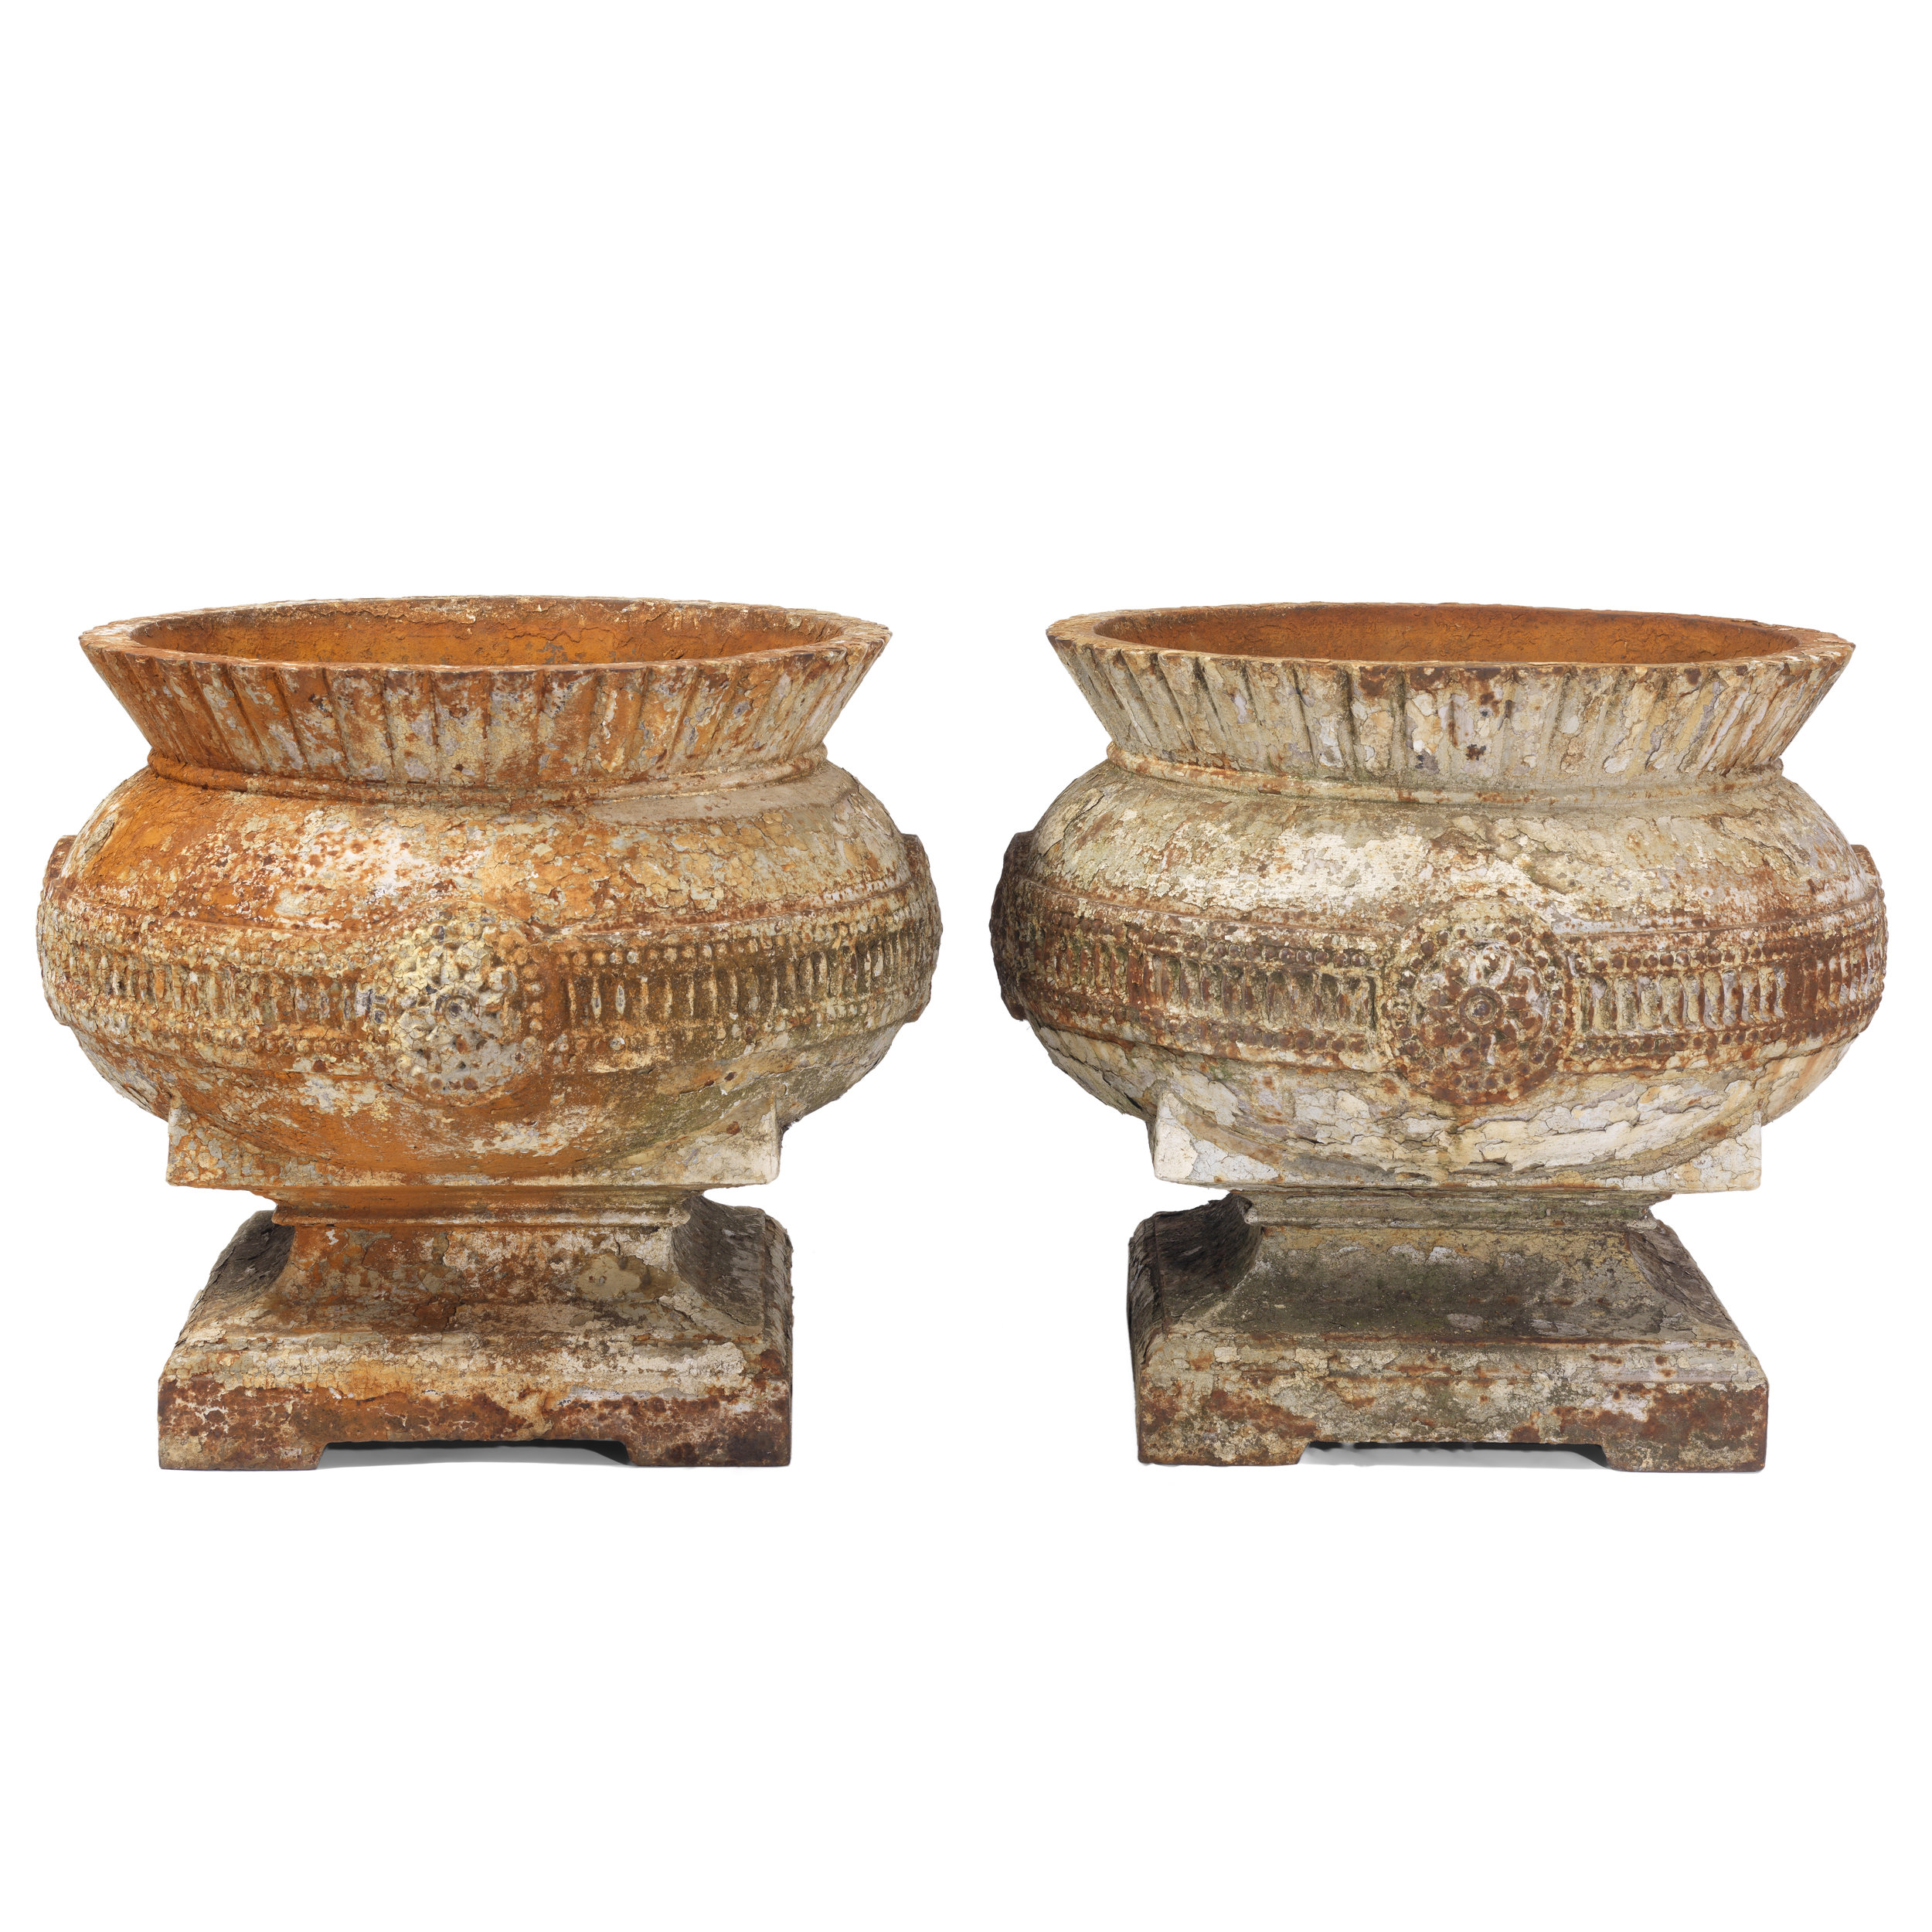 A large pair of Aesthetic Period planters. Squat form leading to fluted, flared rim, with stylised medallions on geometric banding. Original condition.  In the manner of Dr Christopher Dresser. 1880  Highly unusual.  Height 48cm, diameter 54cm.  AVAILABLE.